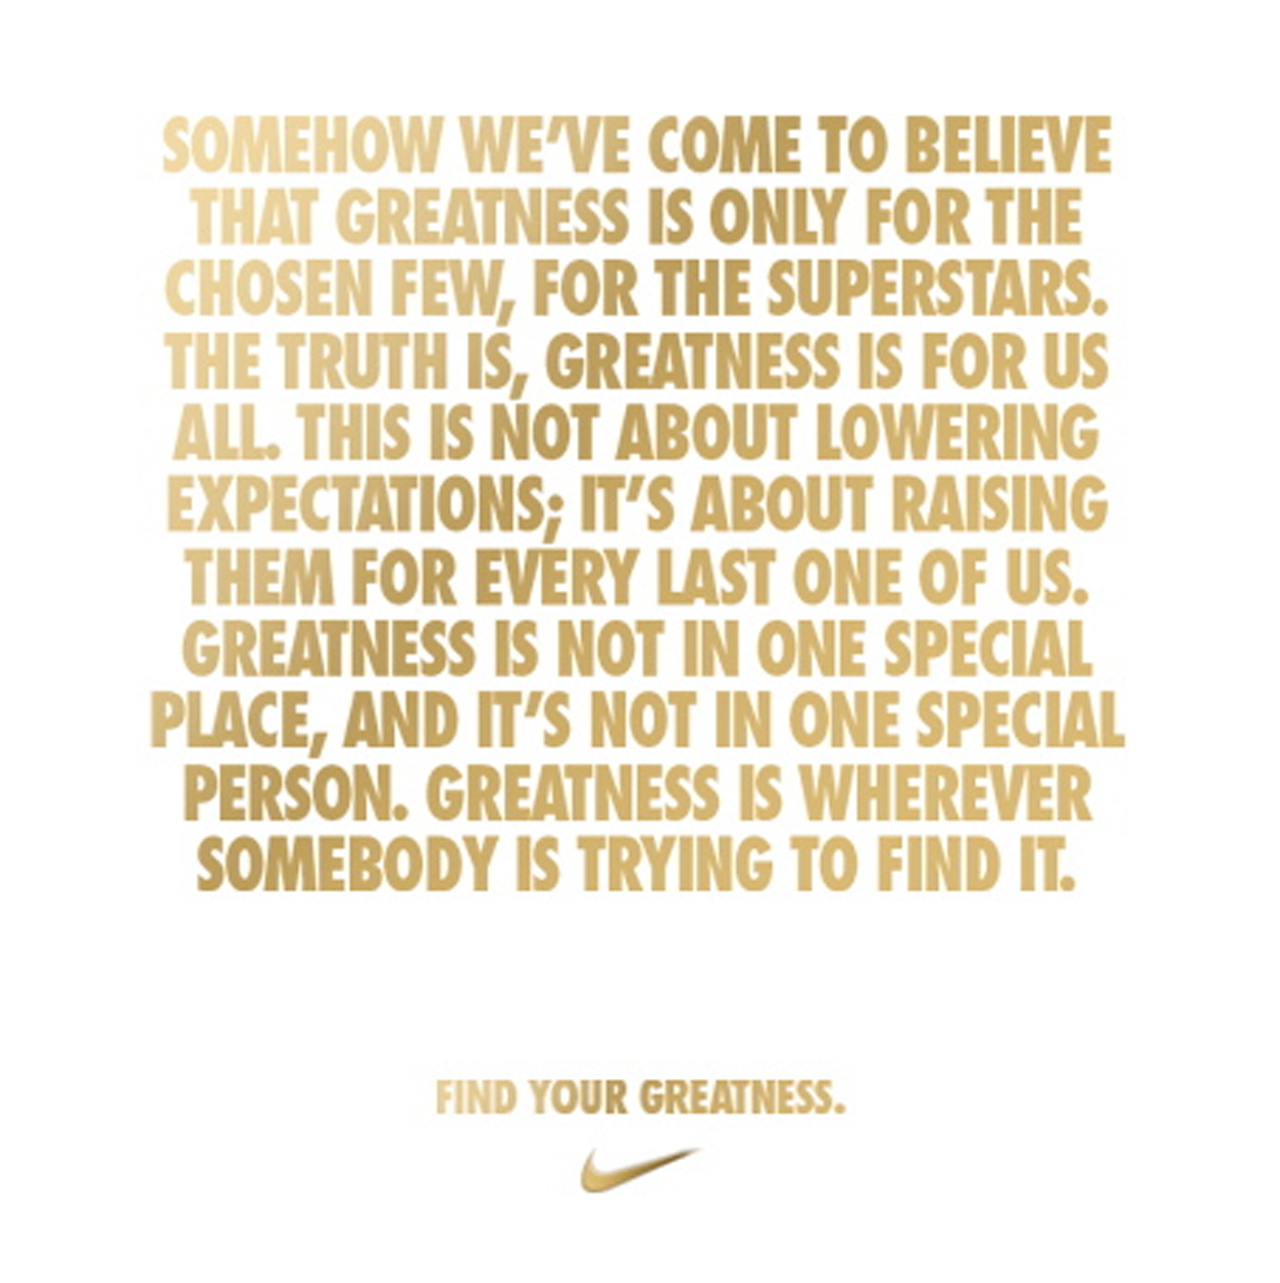 Quotes Of Greatness: 5marts: Have You Found Your Greatness?